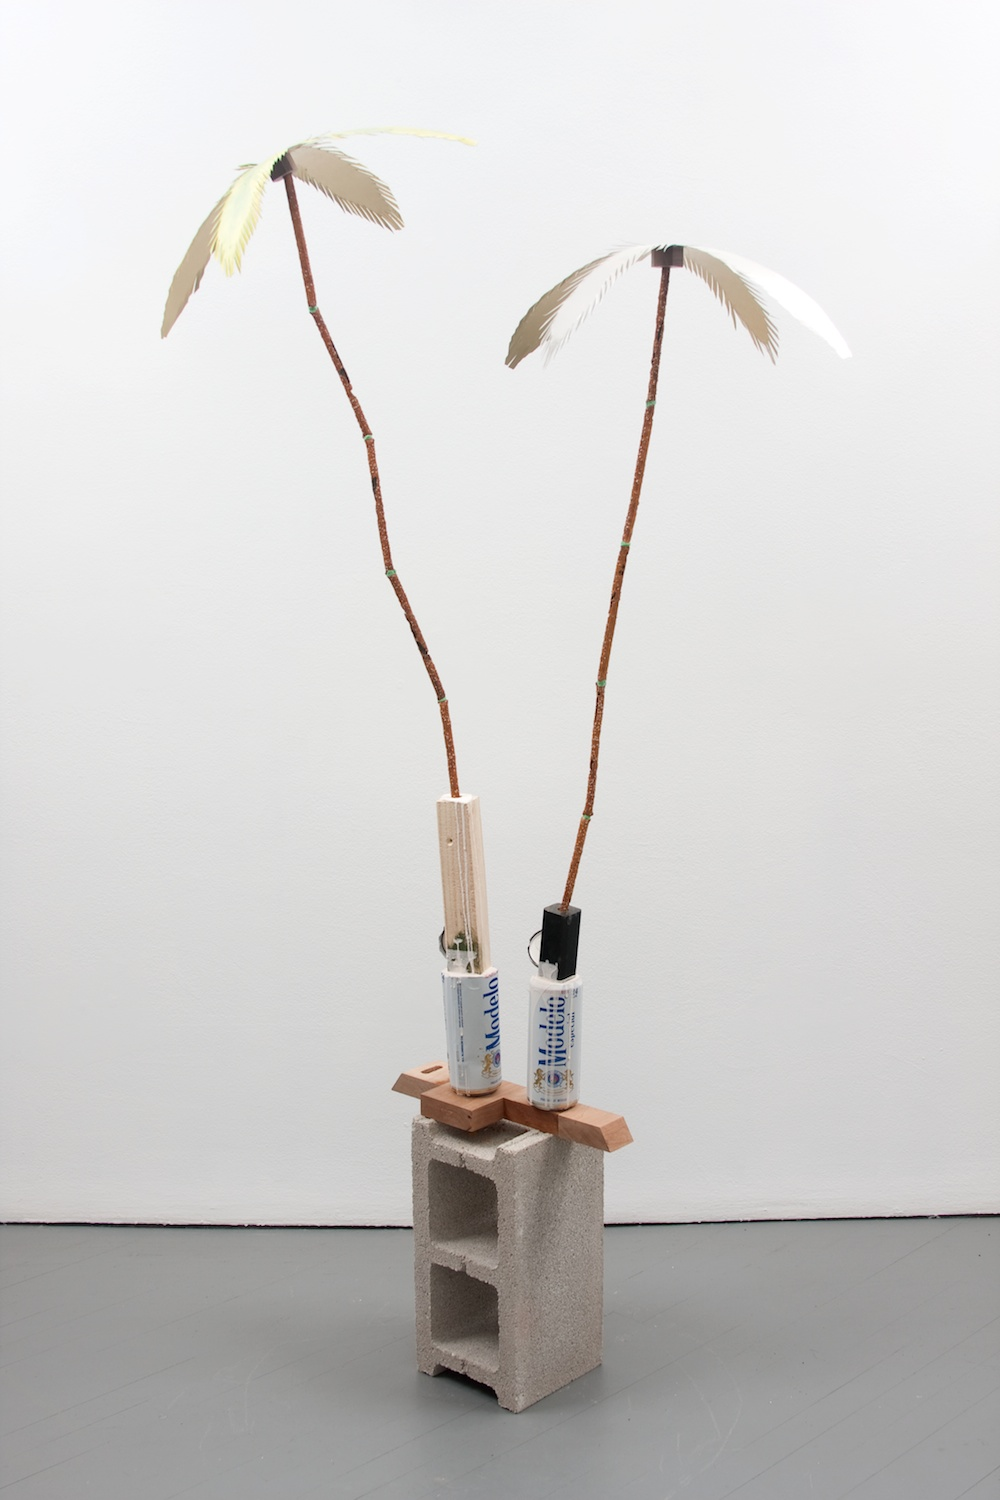 Chris Bradley  Havana  2011 Aluminum, paint, beer cans, aqua resin, wood, concrete block, chewing gum 68 ½h x 26w x 19d in CB002